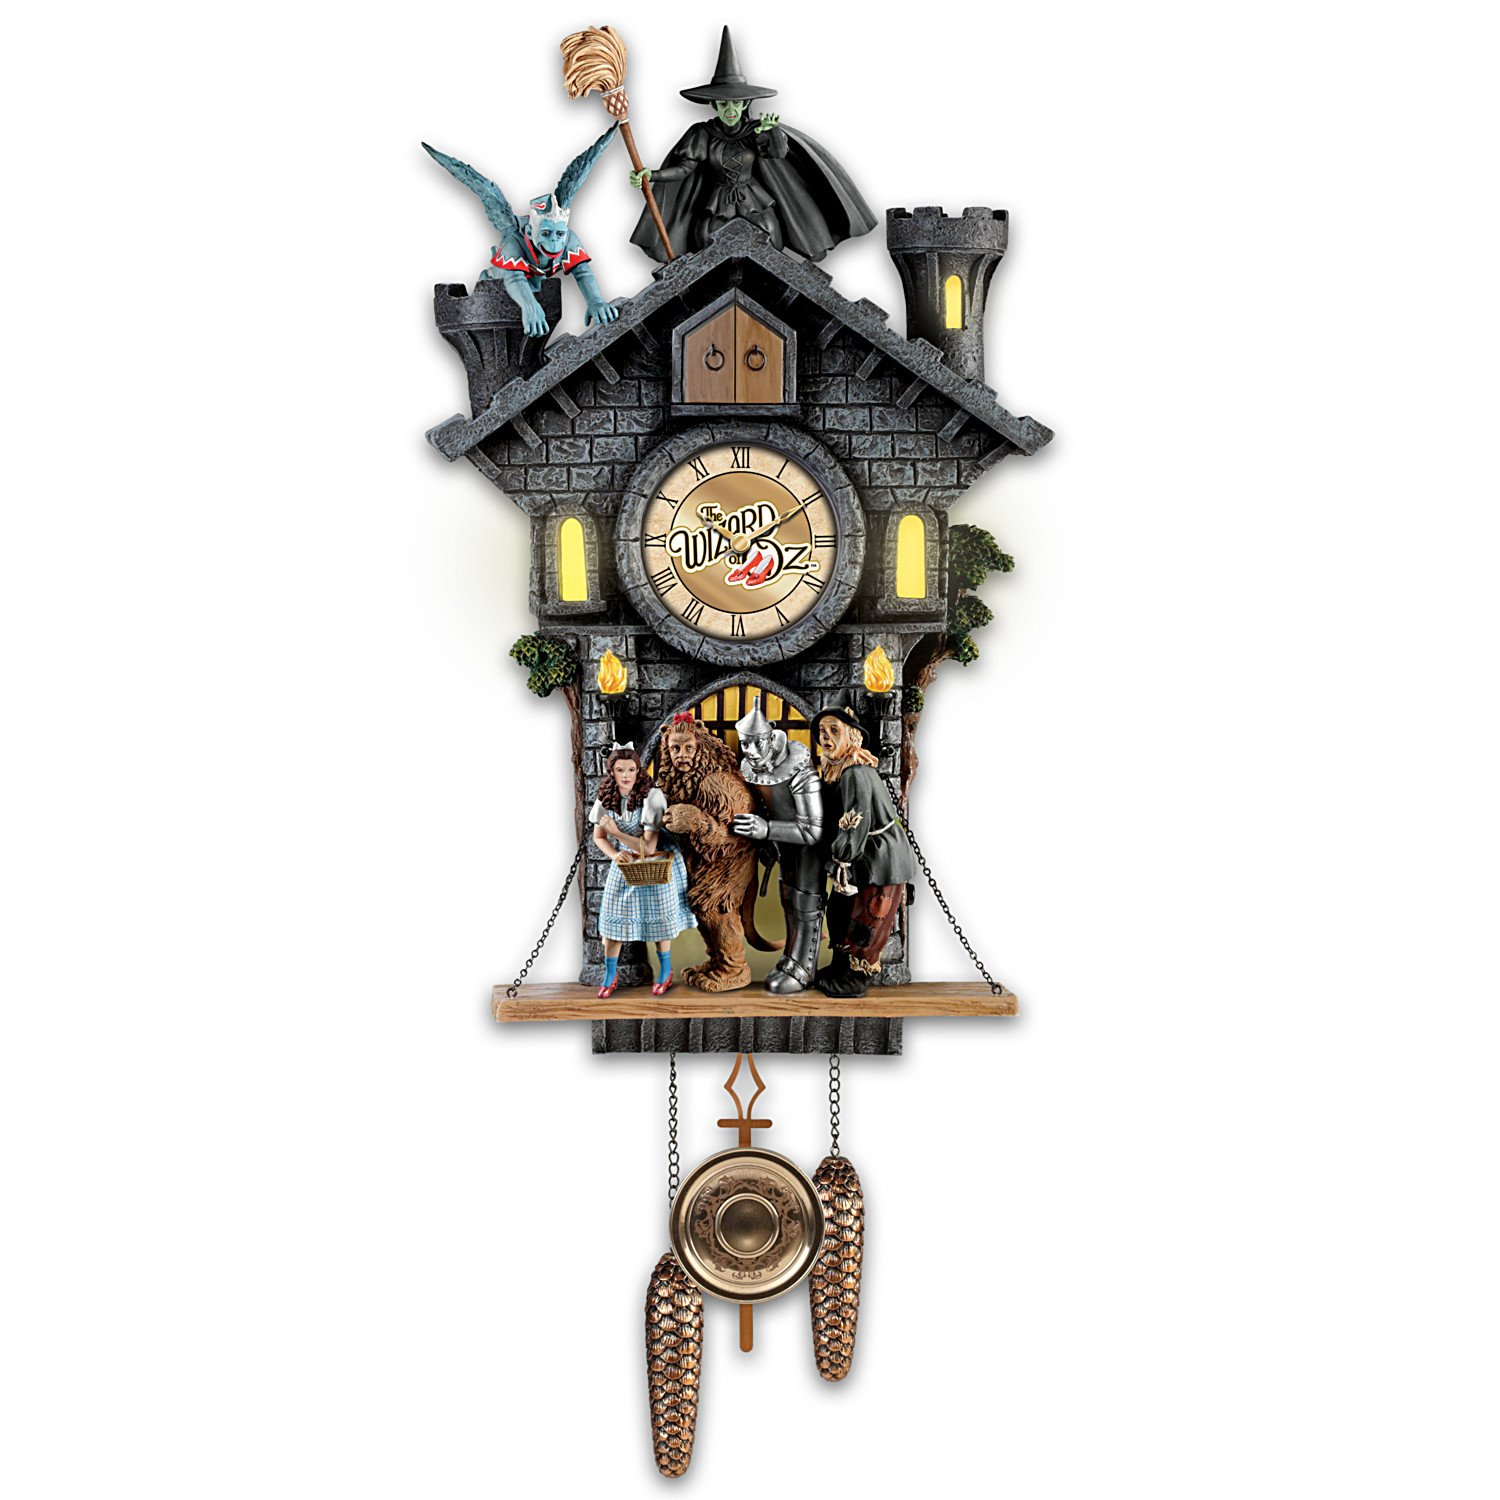 All In Good Time, My Little Pretty Cuckoo Clock With Barking Toto by The Bradford Exchange